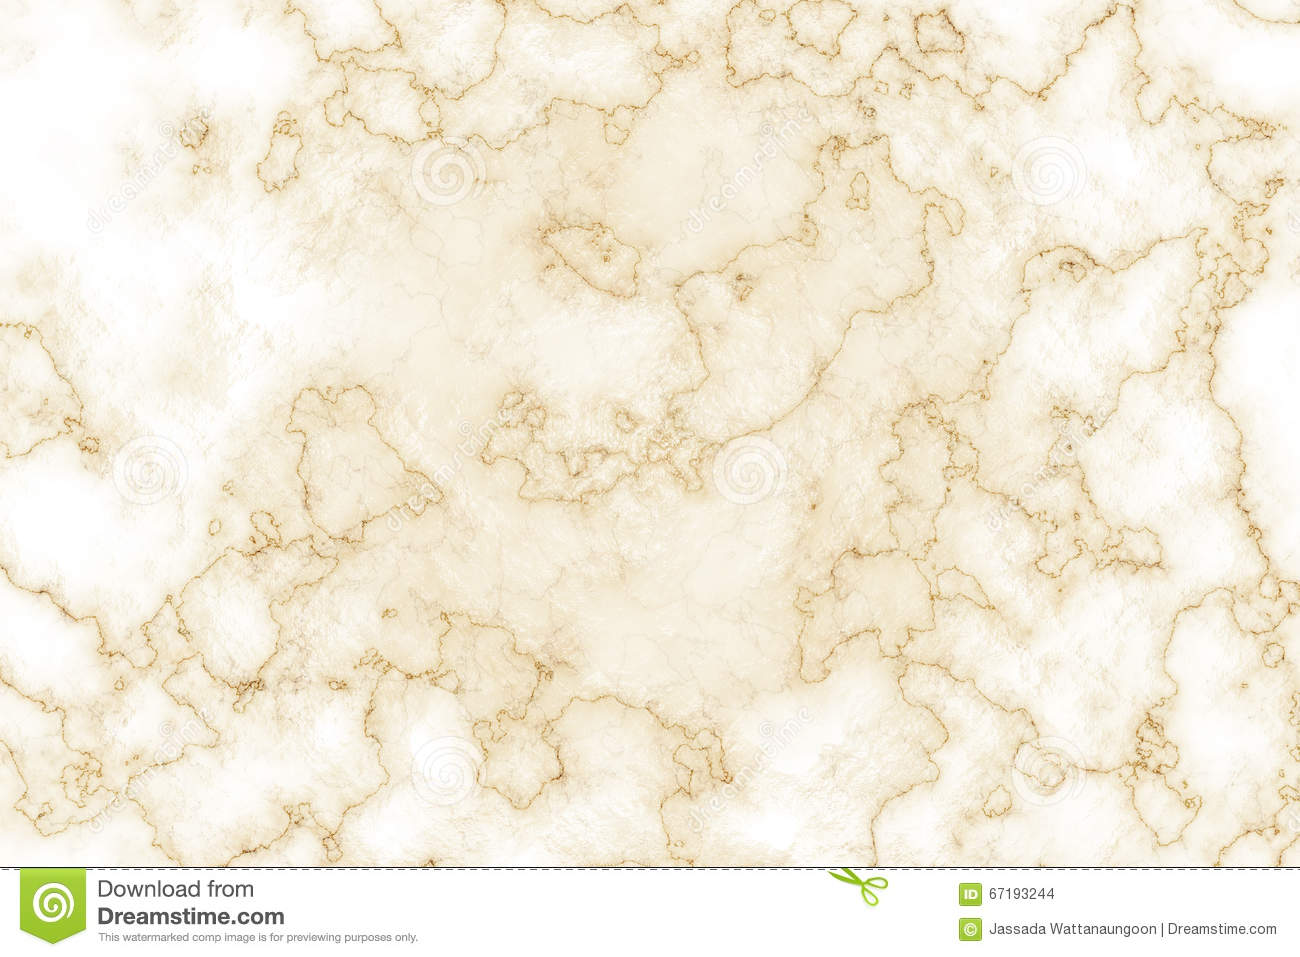 Top Wallpaper Marble Cream - cream-brown-marble-background-texture-67193244  Best Photo Reference_889743.jpg